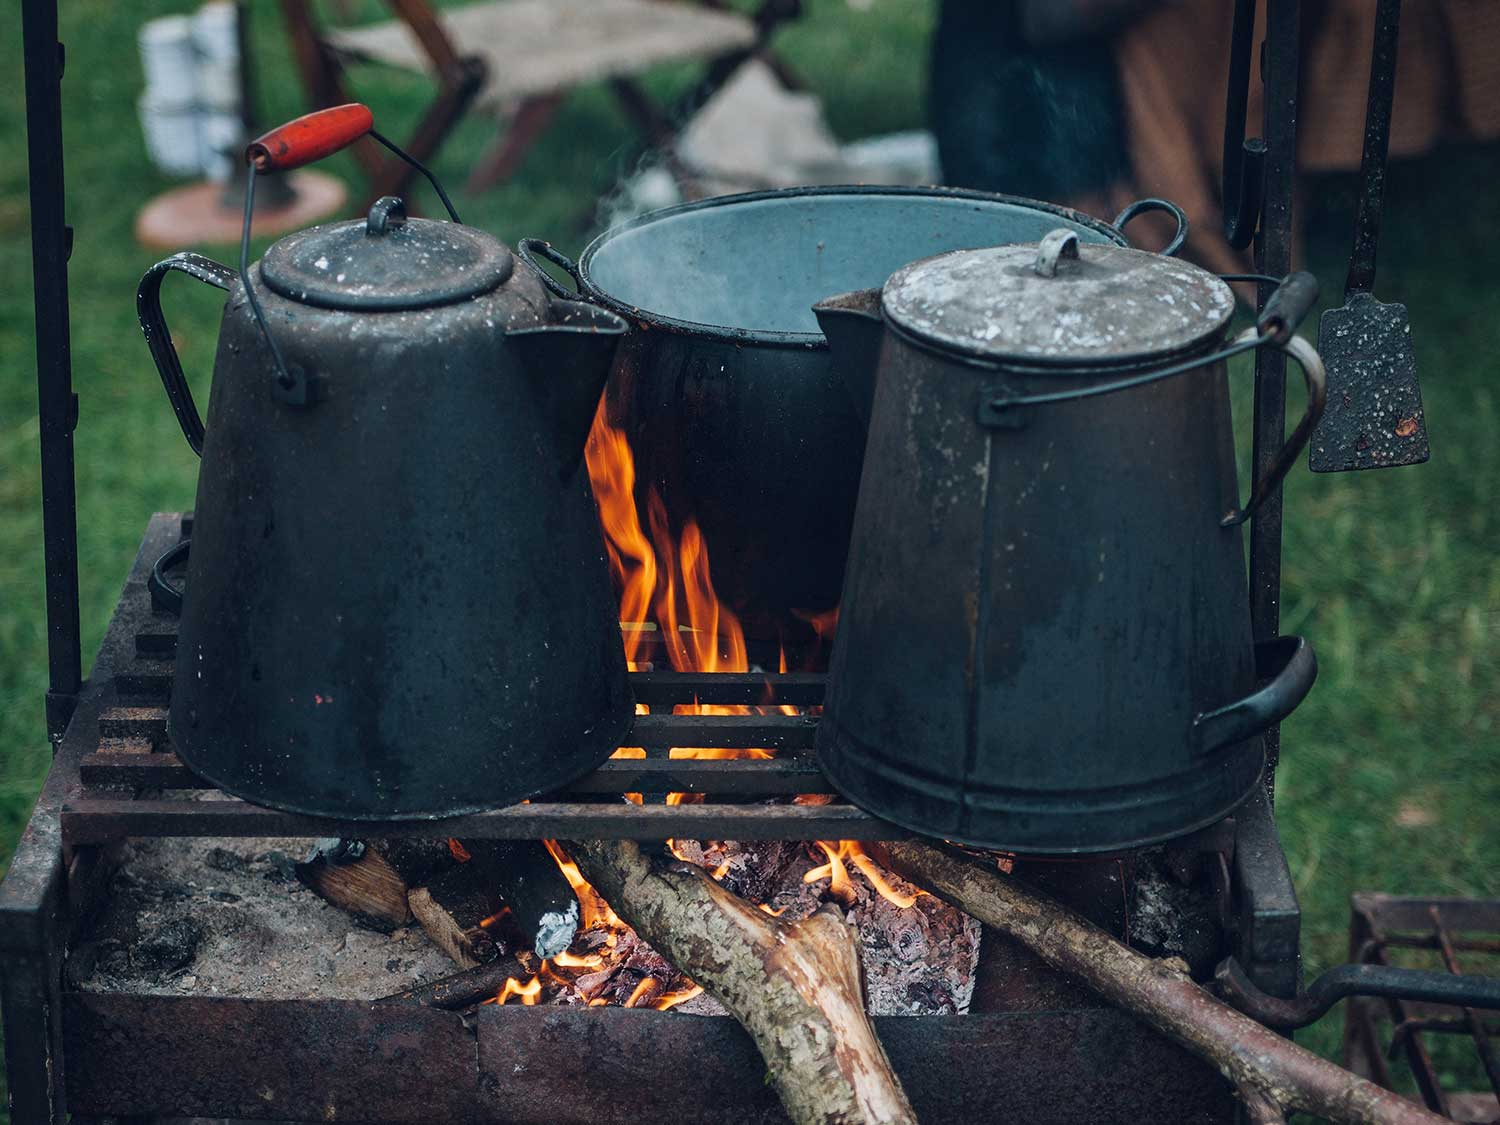 Camp coffee pots over campfire.